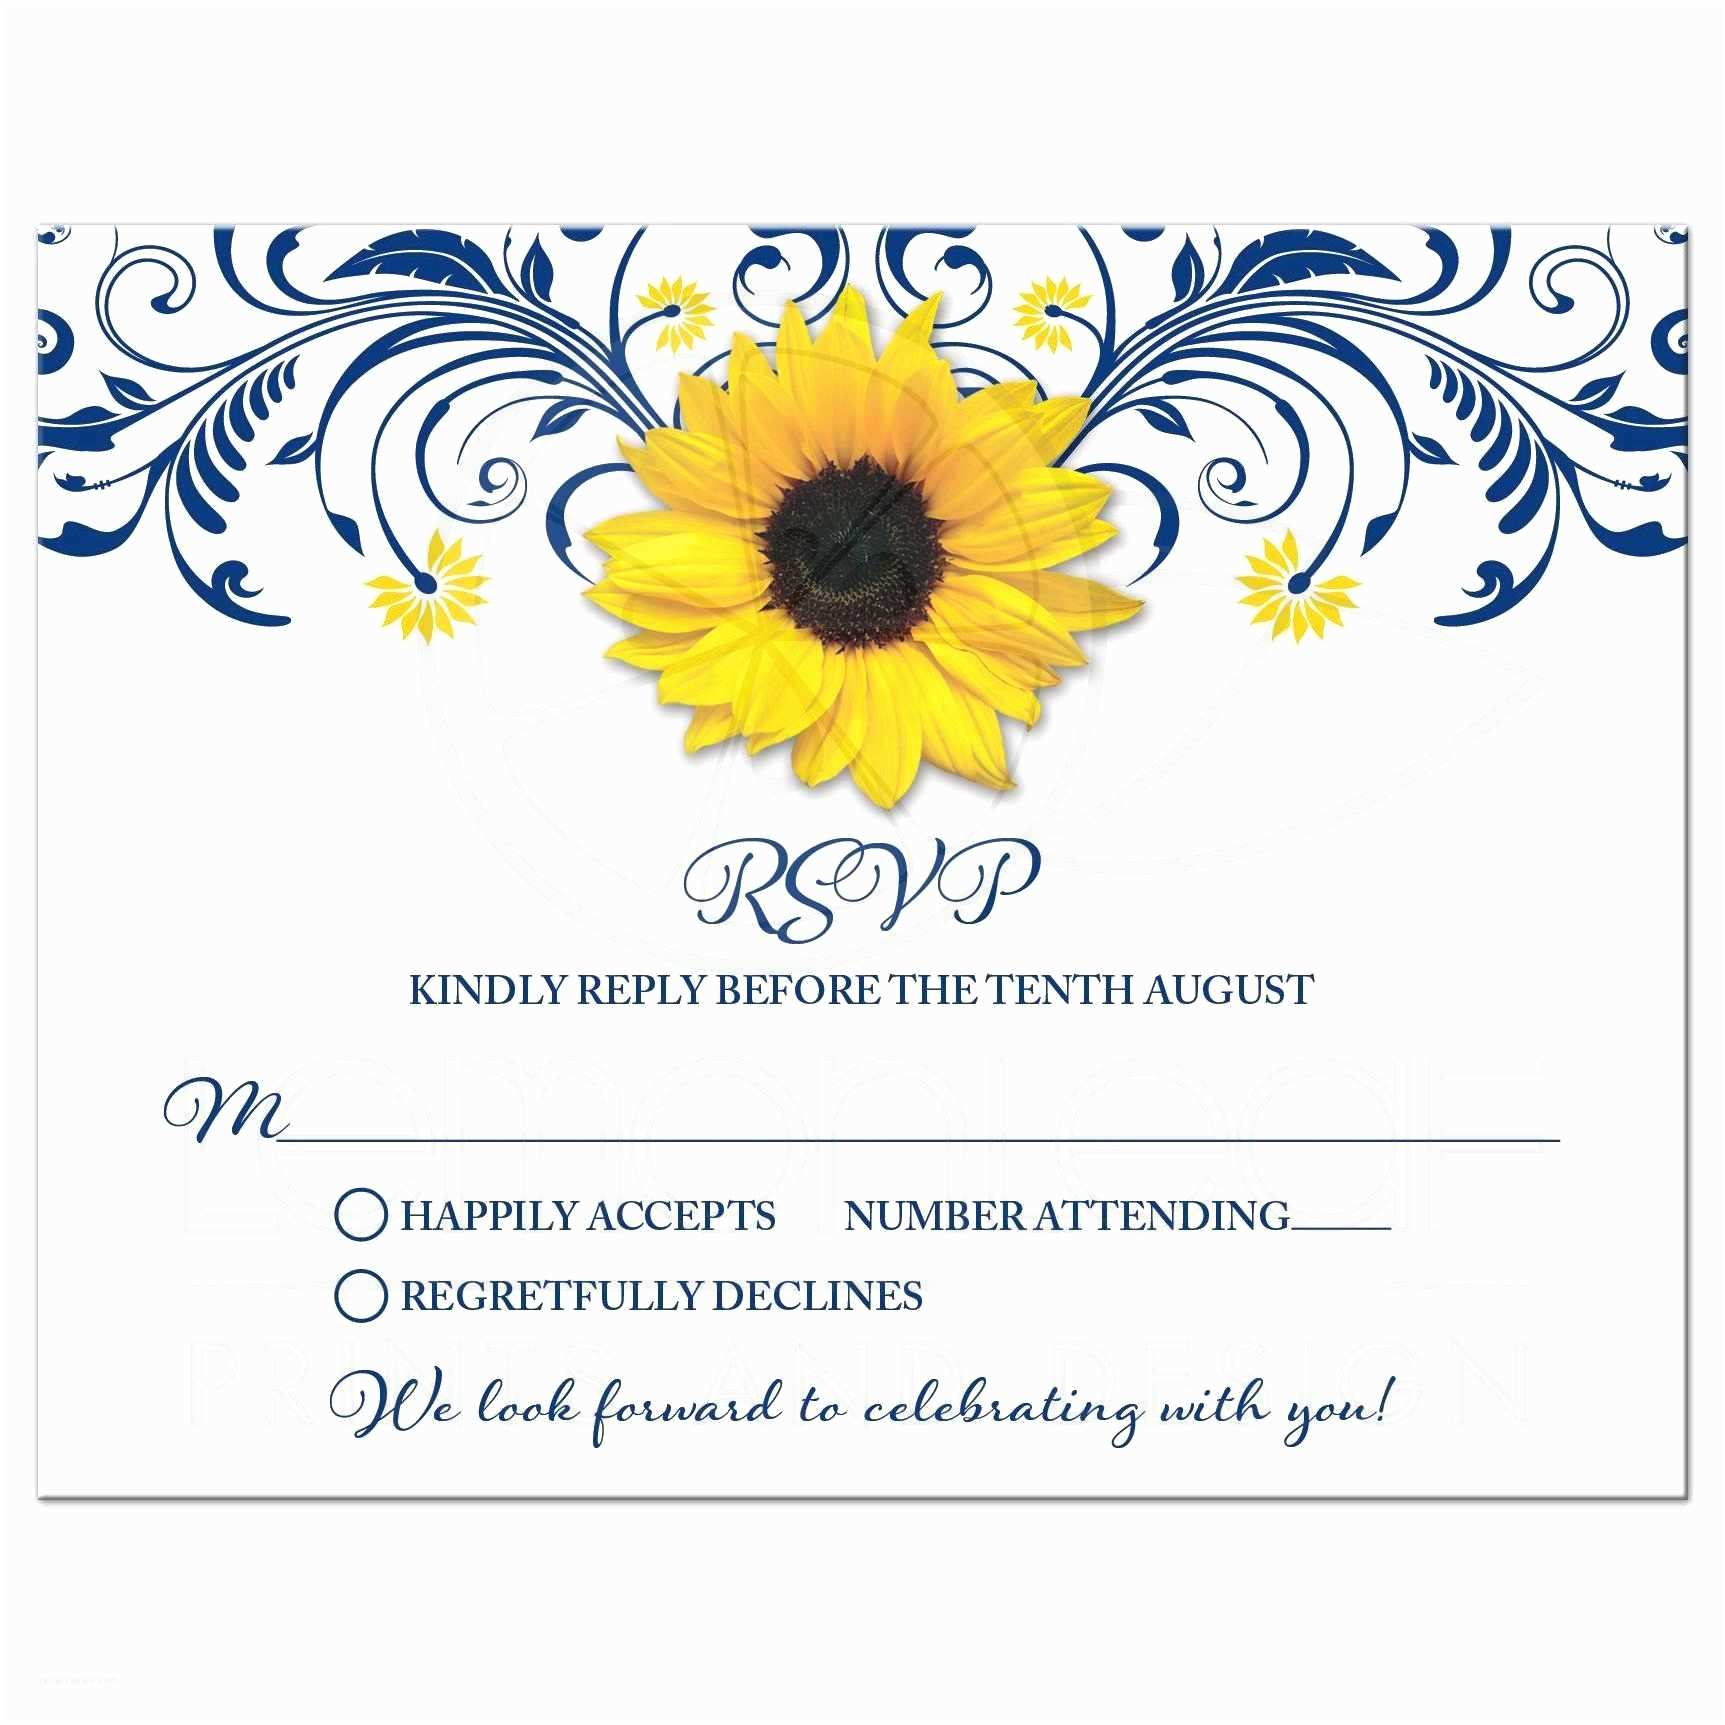 Navy Blue and Sunflower Wedding Invitations Navy Blue Sunflower Floral Wedding Rsvp Card